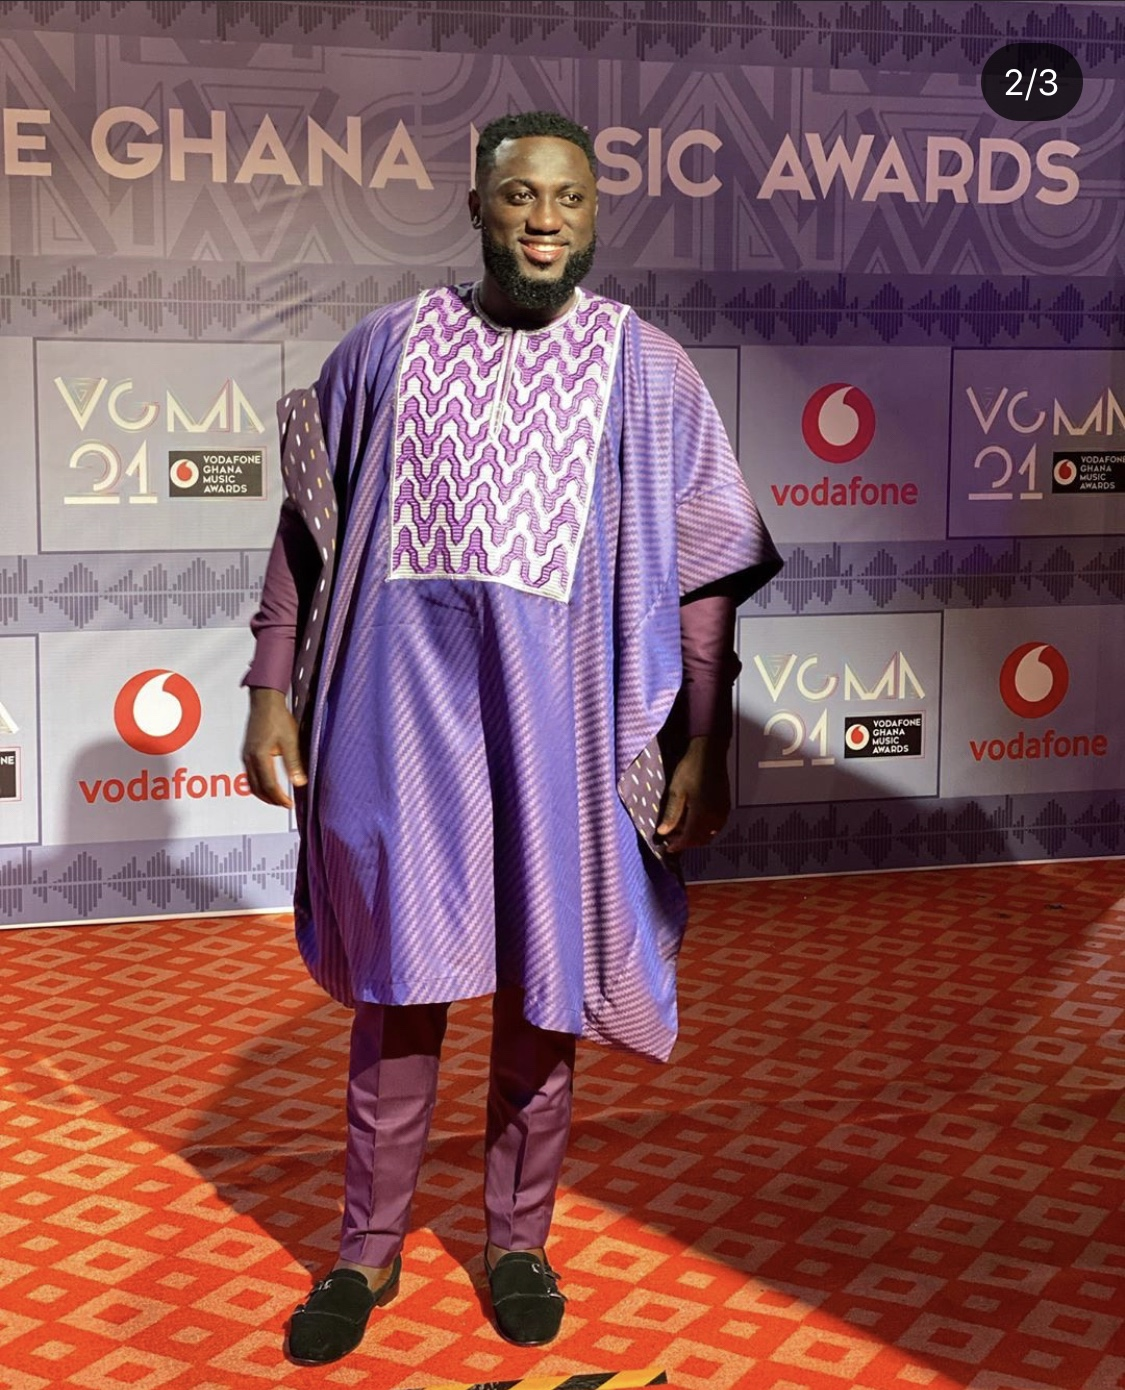 #vgma21:-gospel-musician-mog-wins-male-vocalist-of-the-year